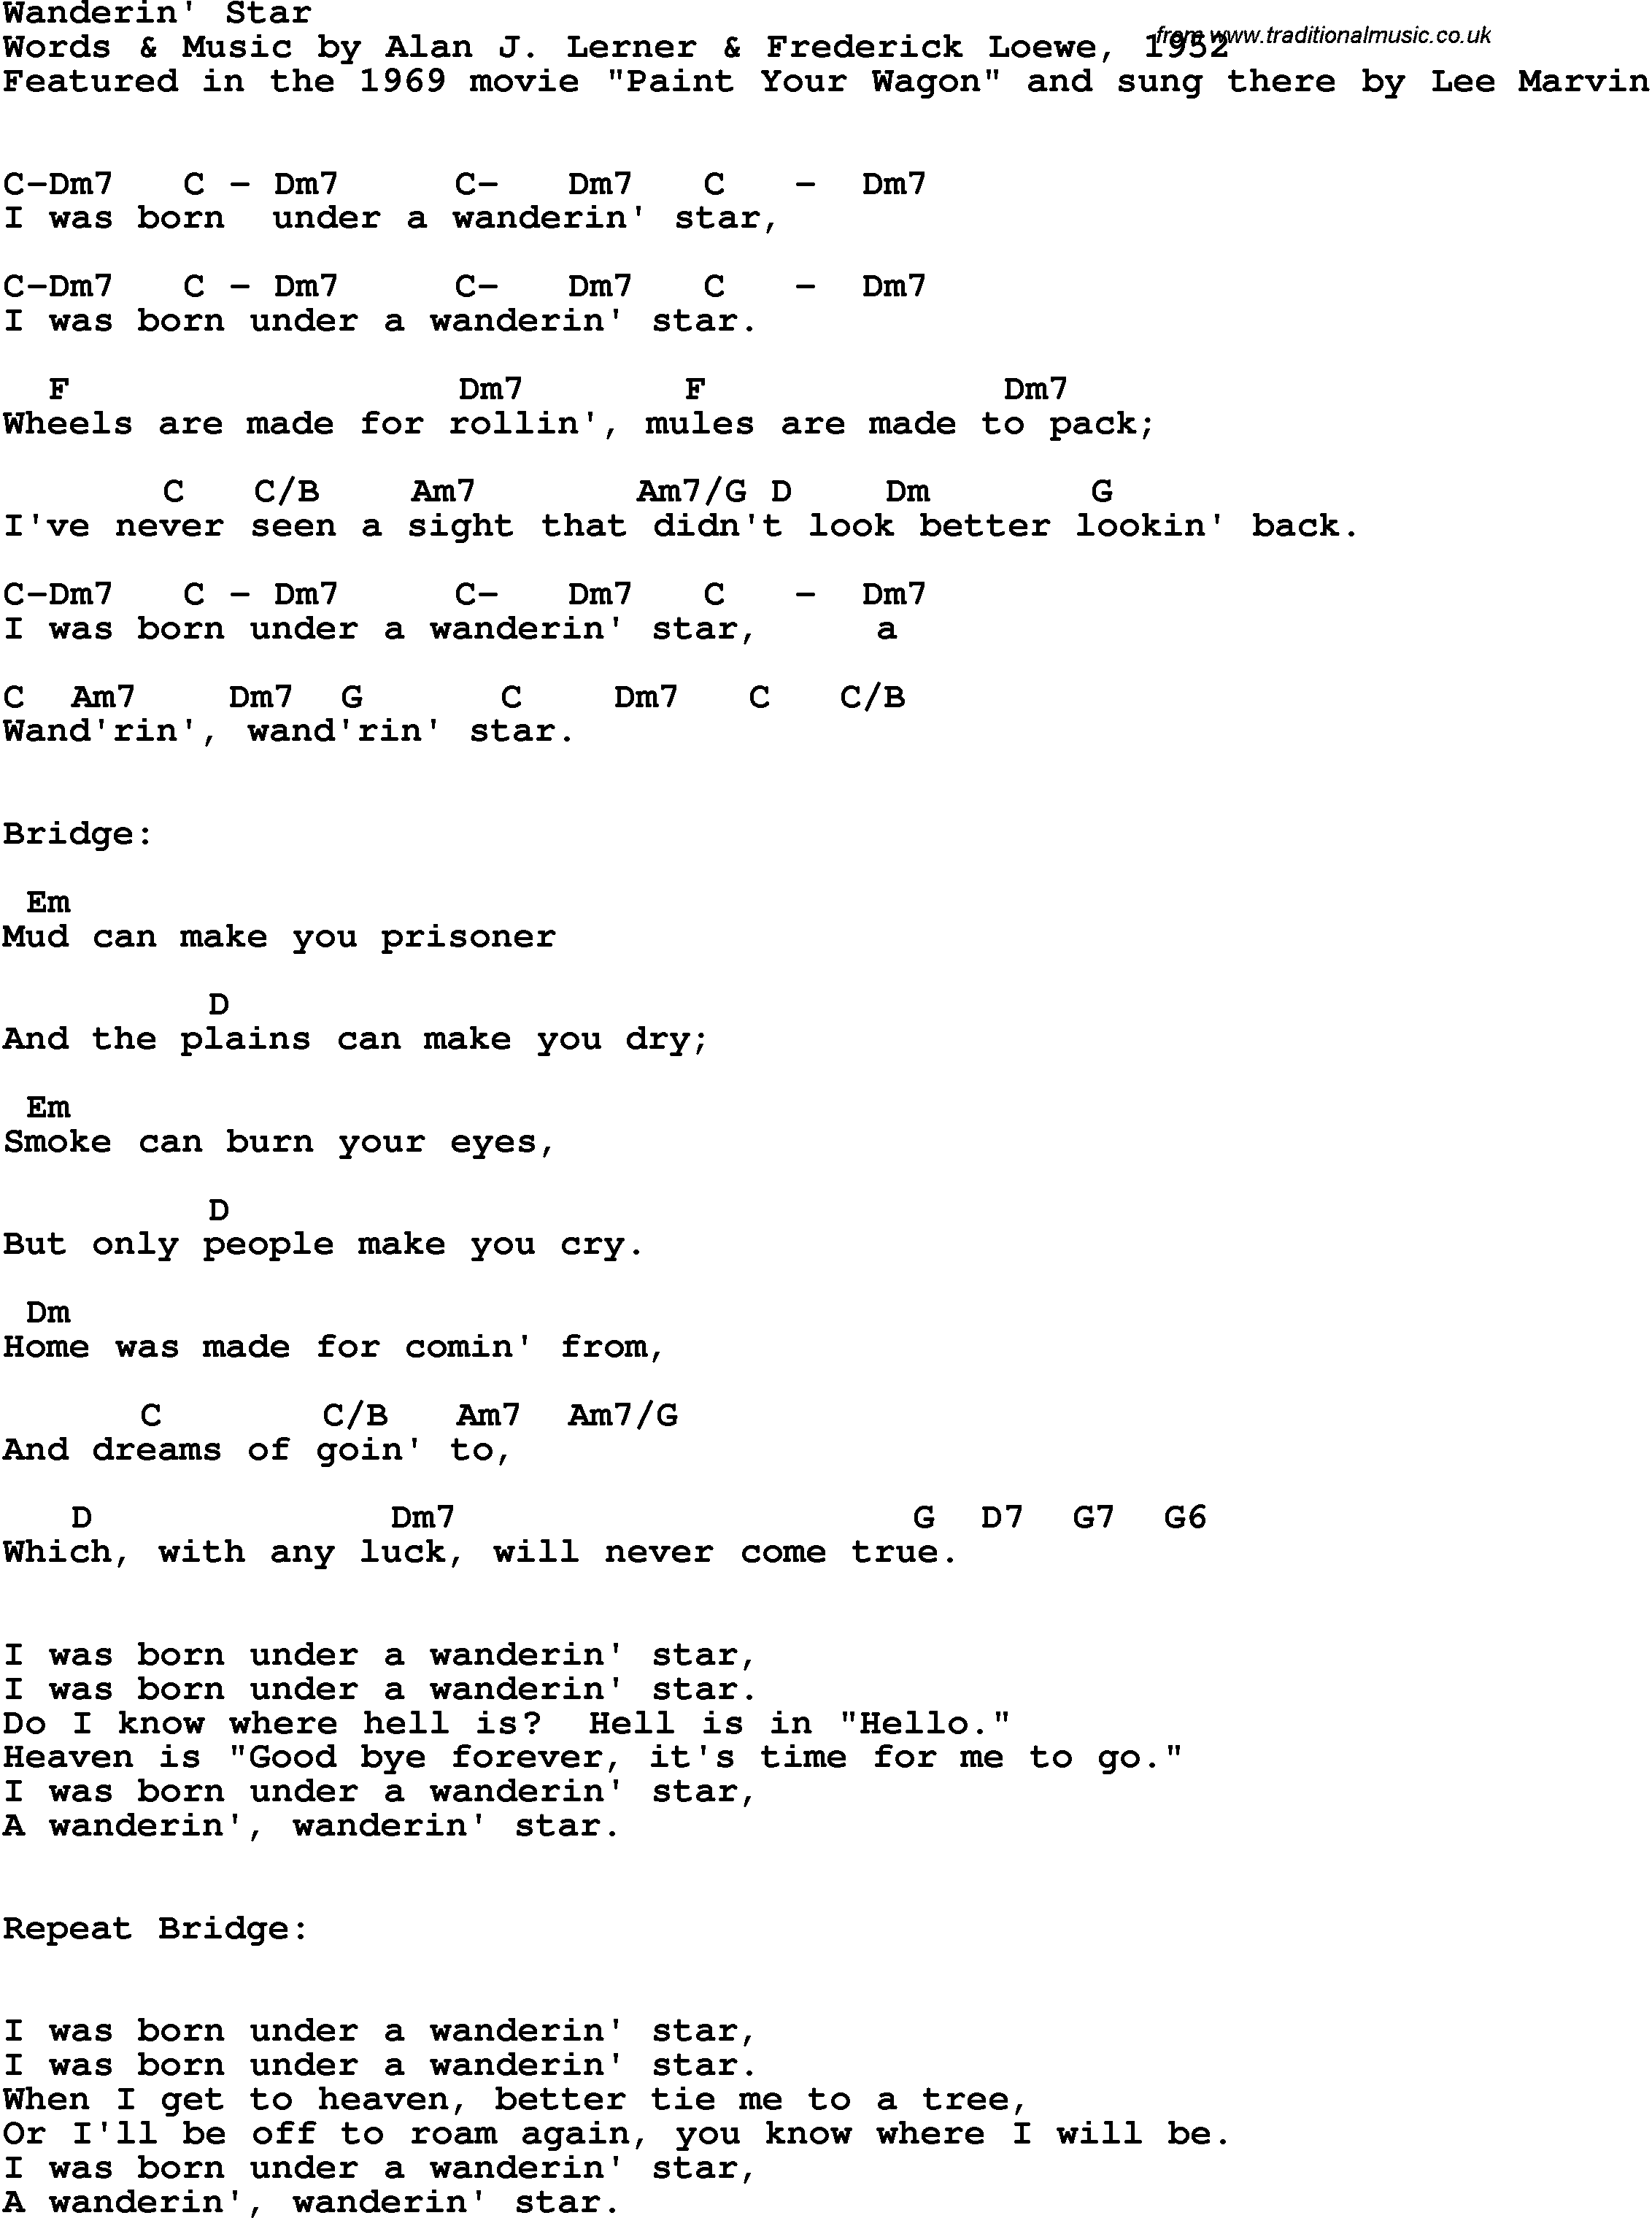 Song Lyrics With Guitar Chords For Wanderin Star Lee Marvin 1969